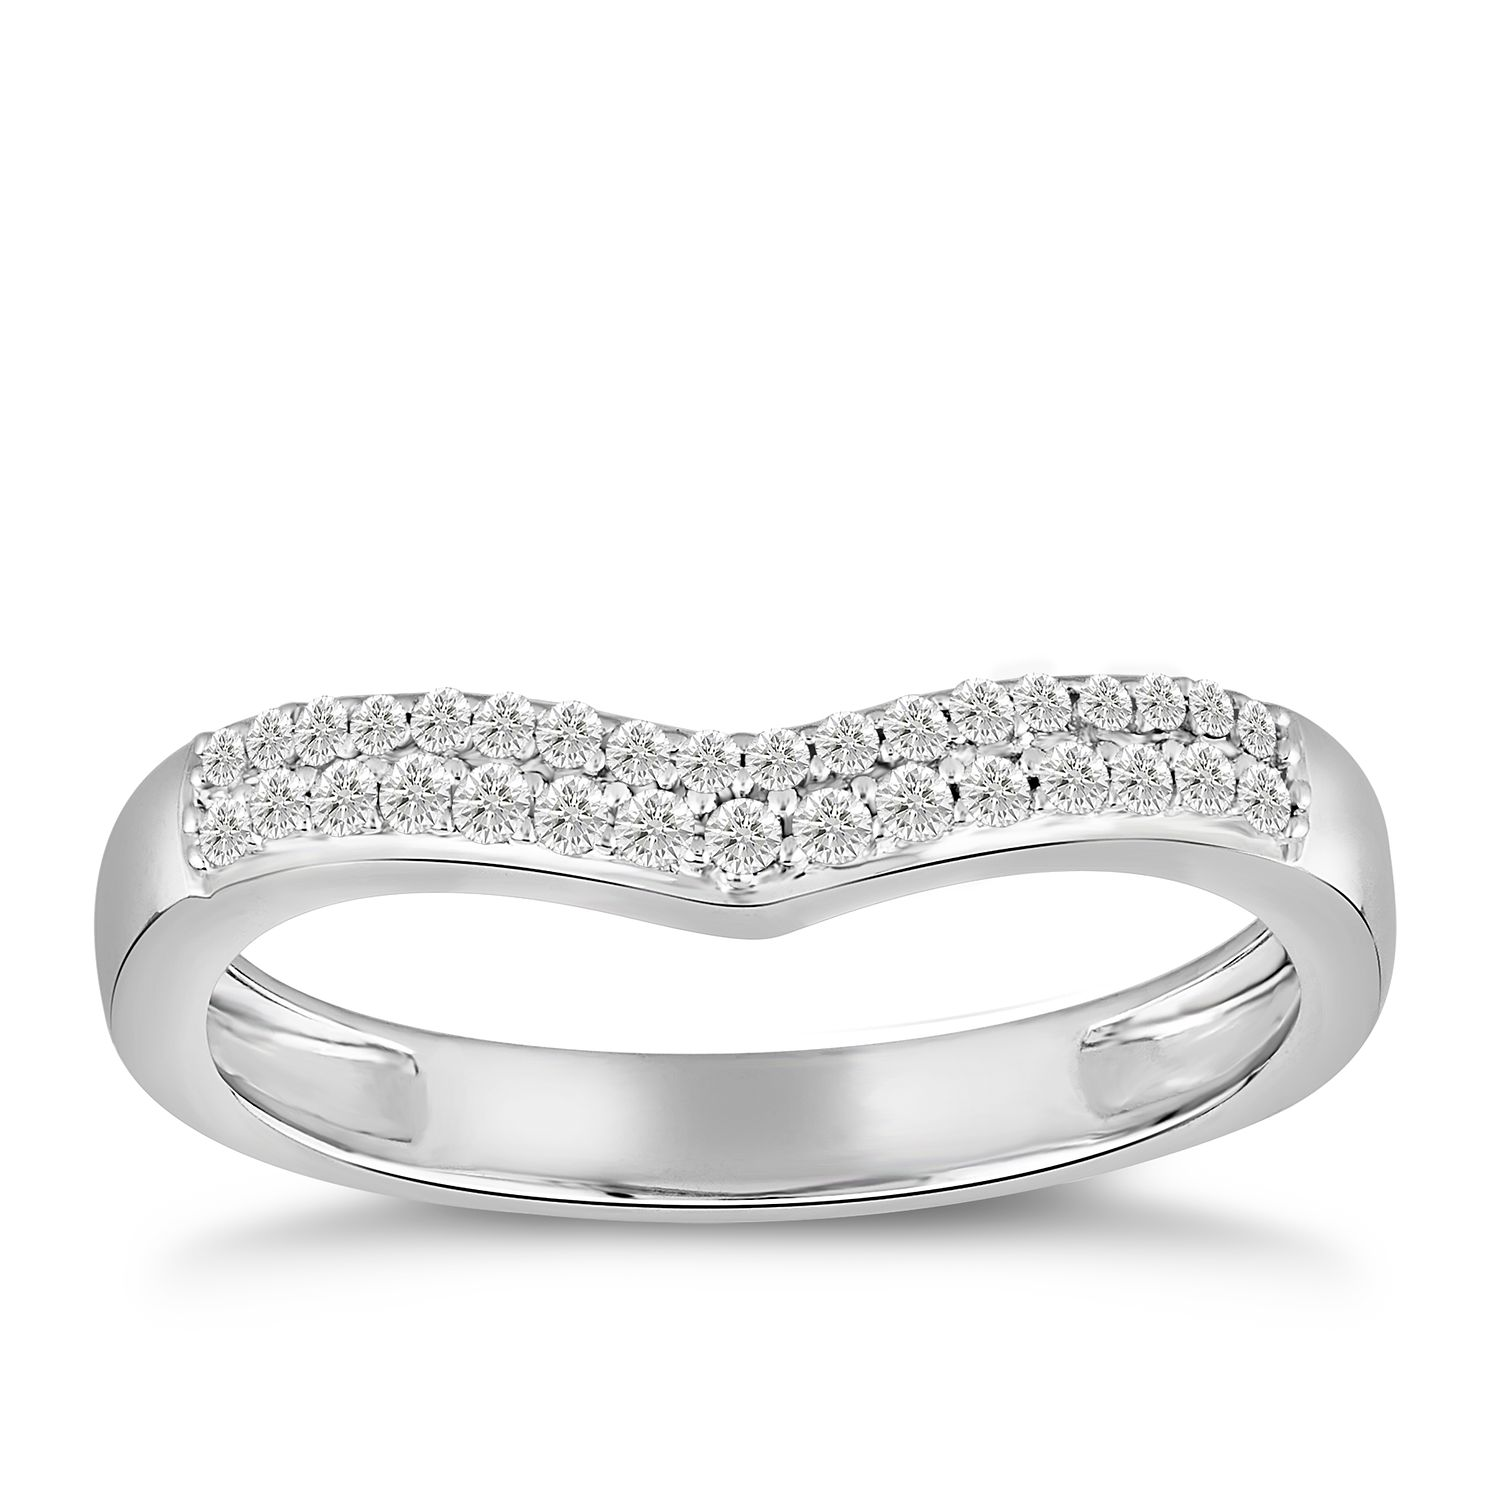 18ct White Gold 0.15ct Diamond Shaped Ring - Product number 4920155